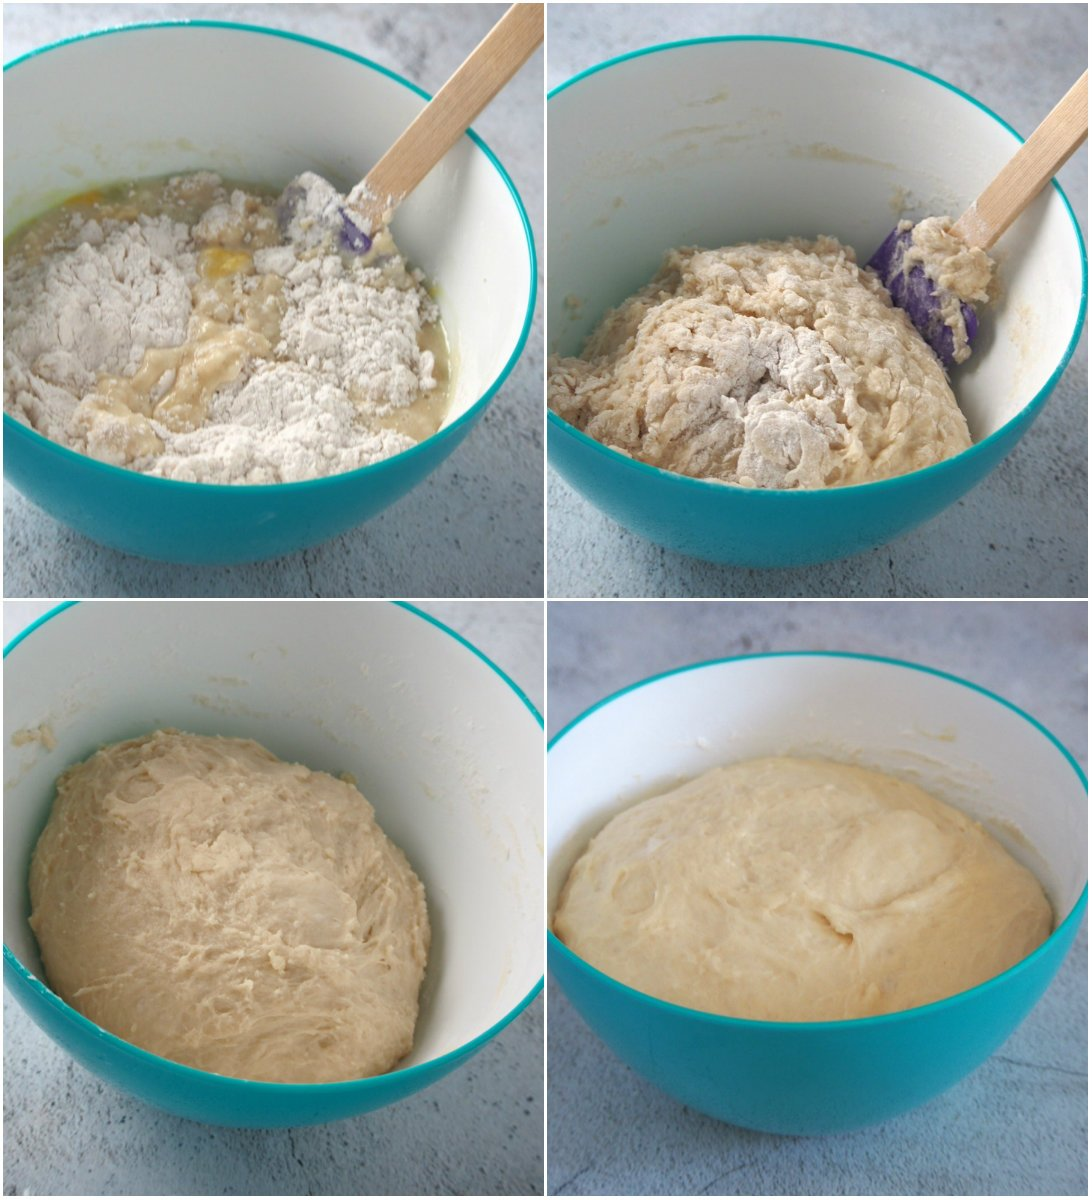 Collage showing the process of making the dough for pan de leche.